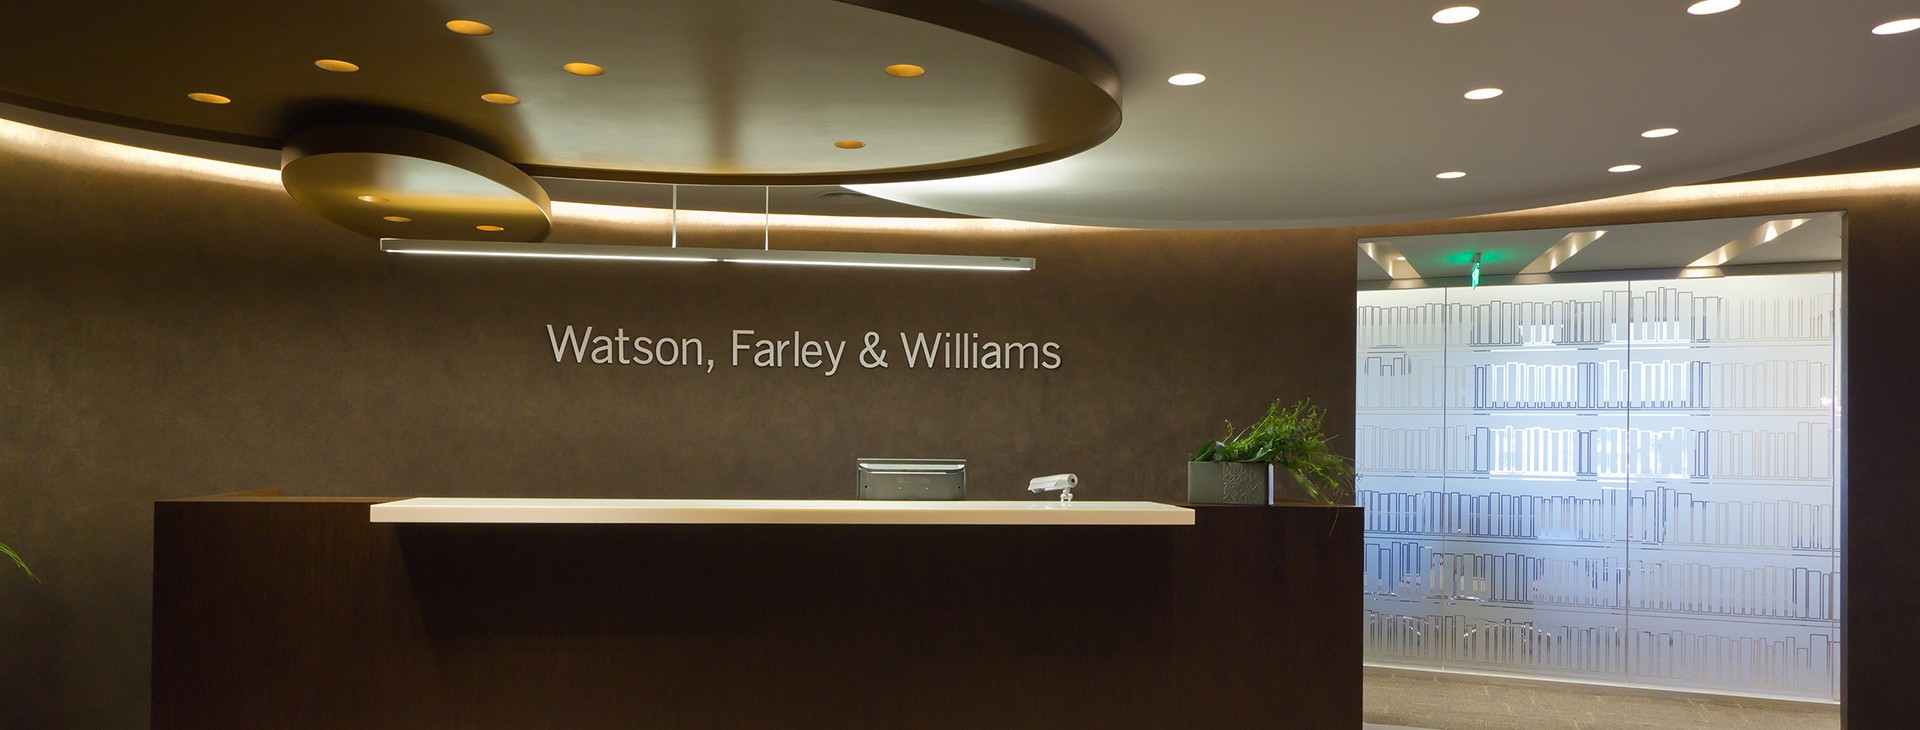 Watson, Farley & Williams Law Office